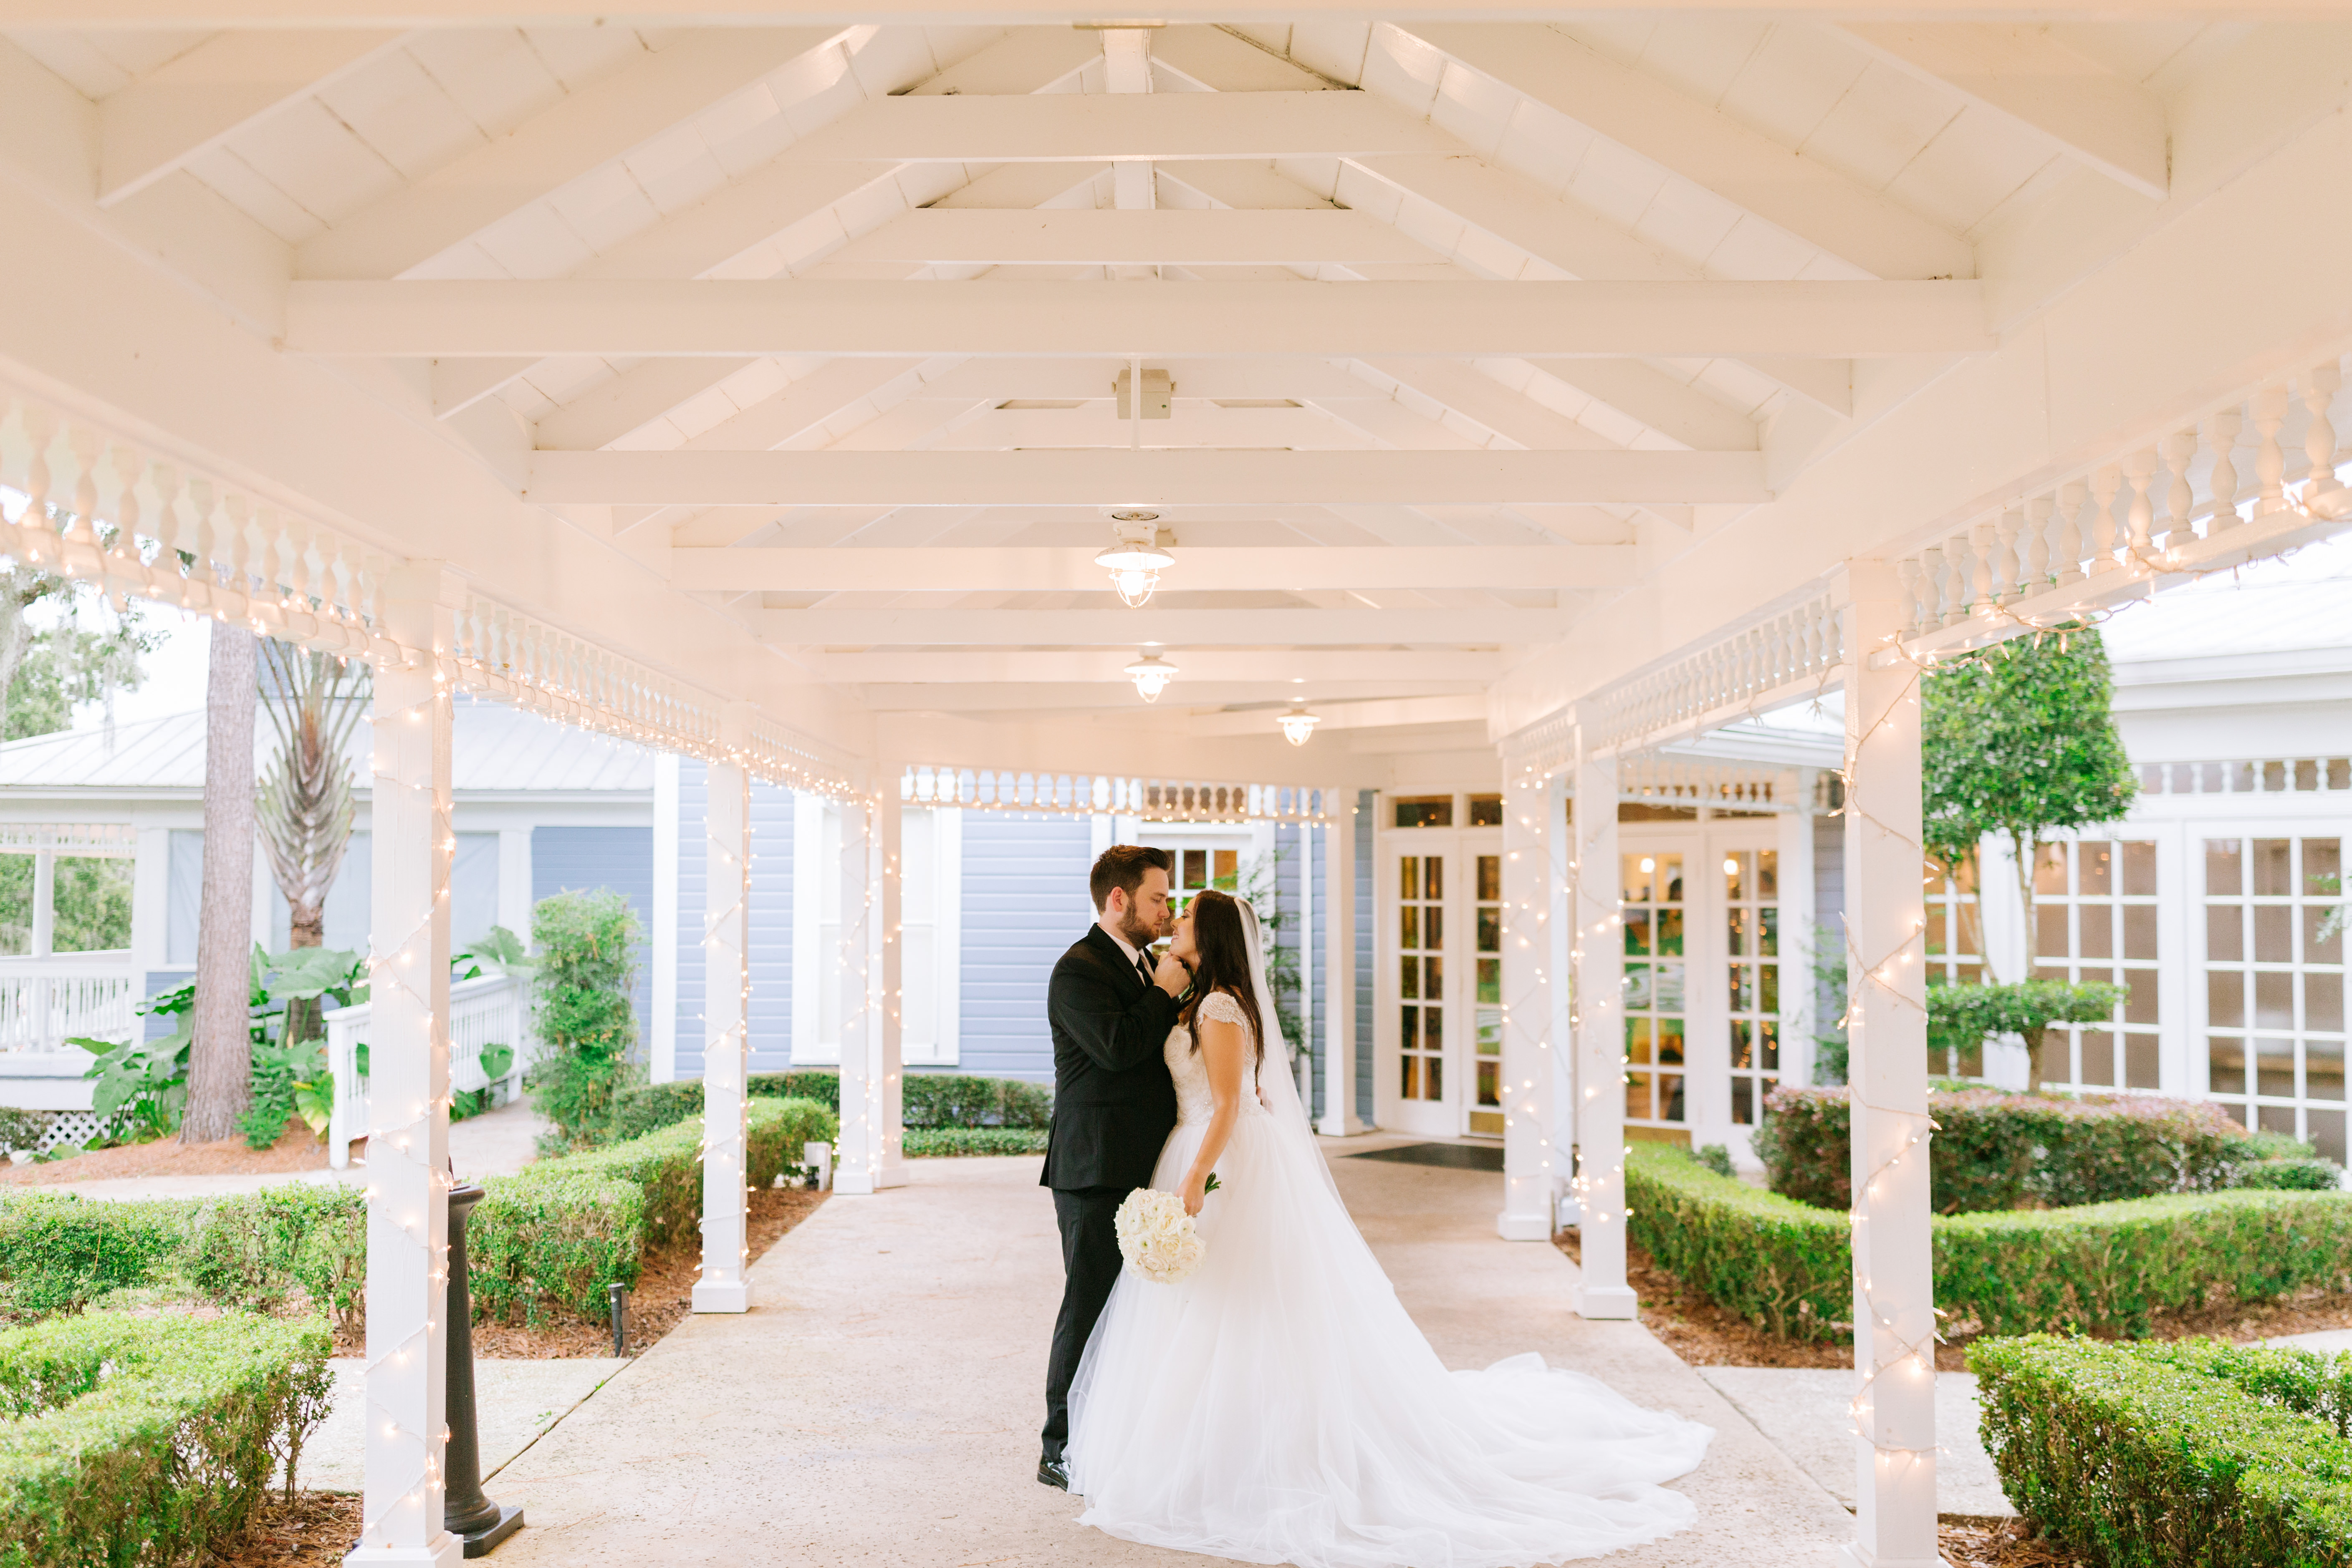 bride and groom kissing outside beneath awning